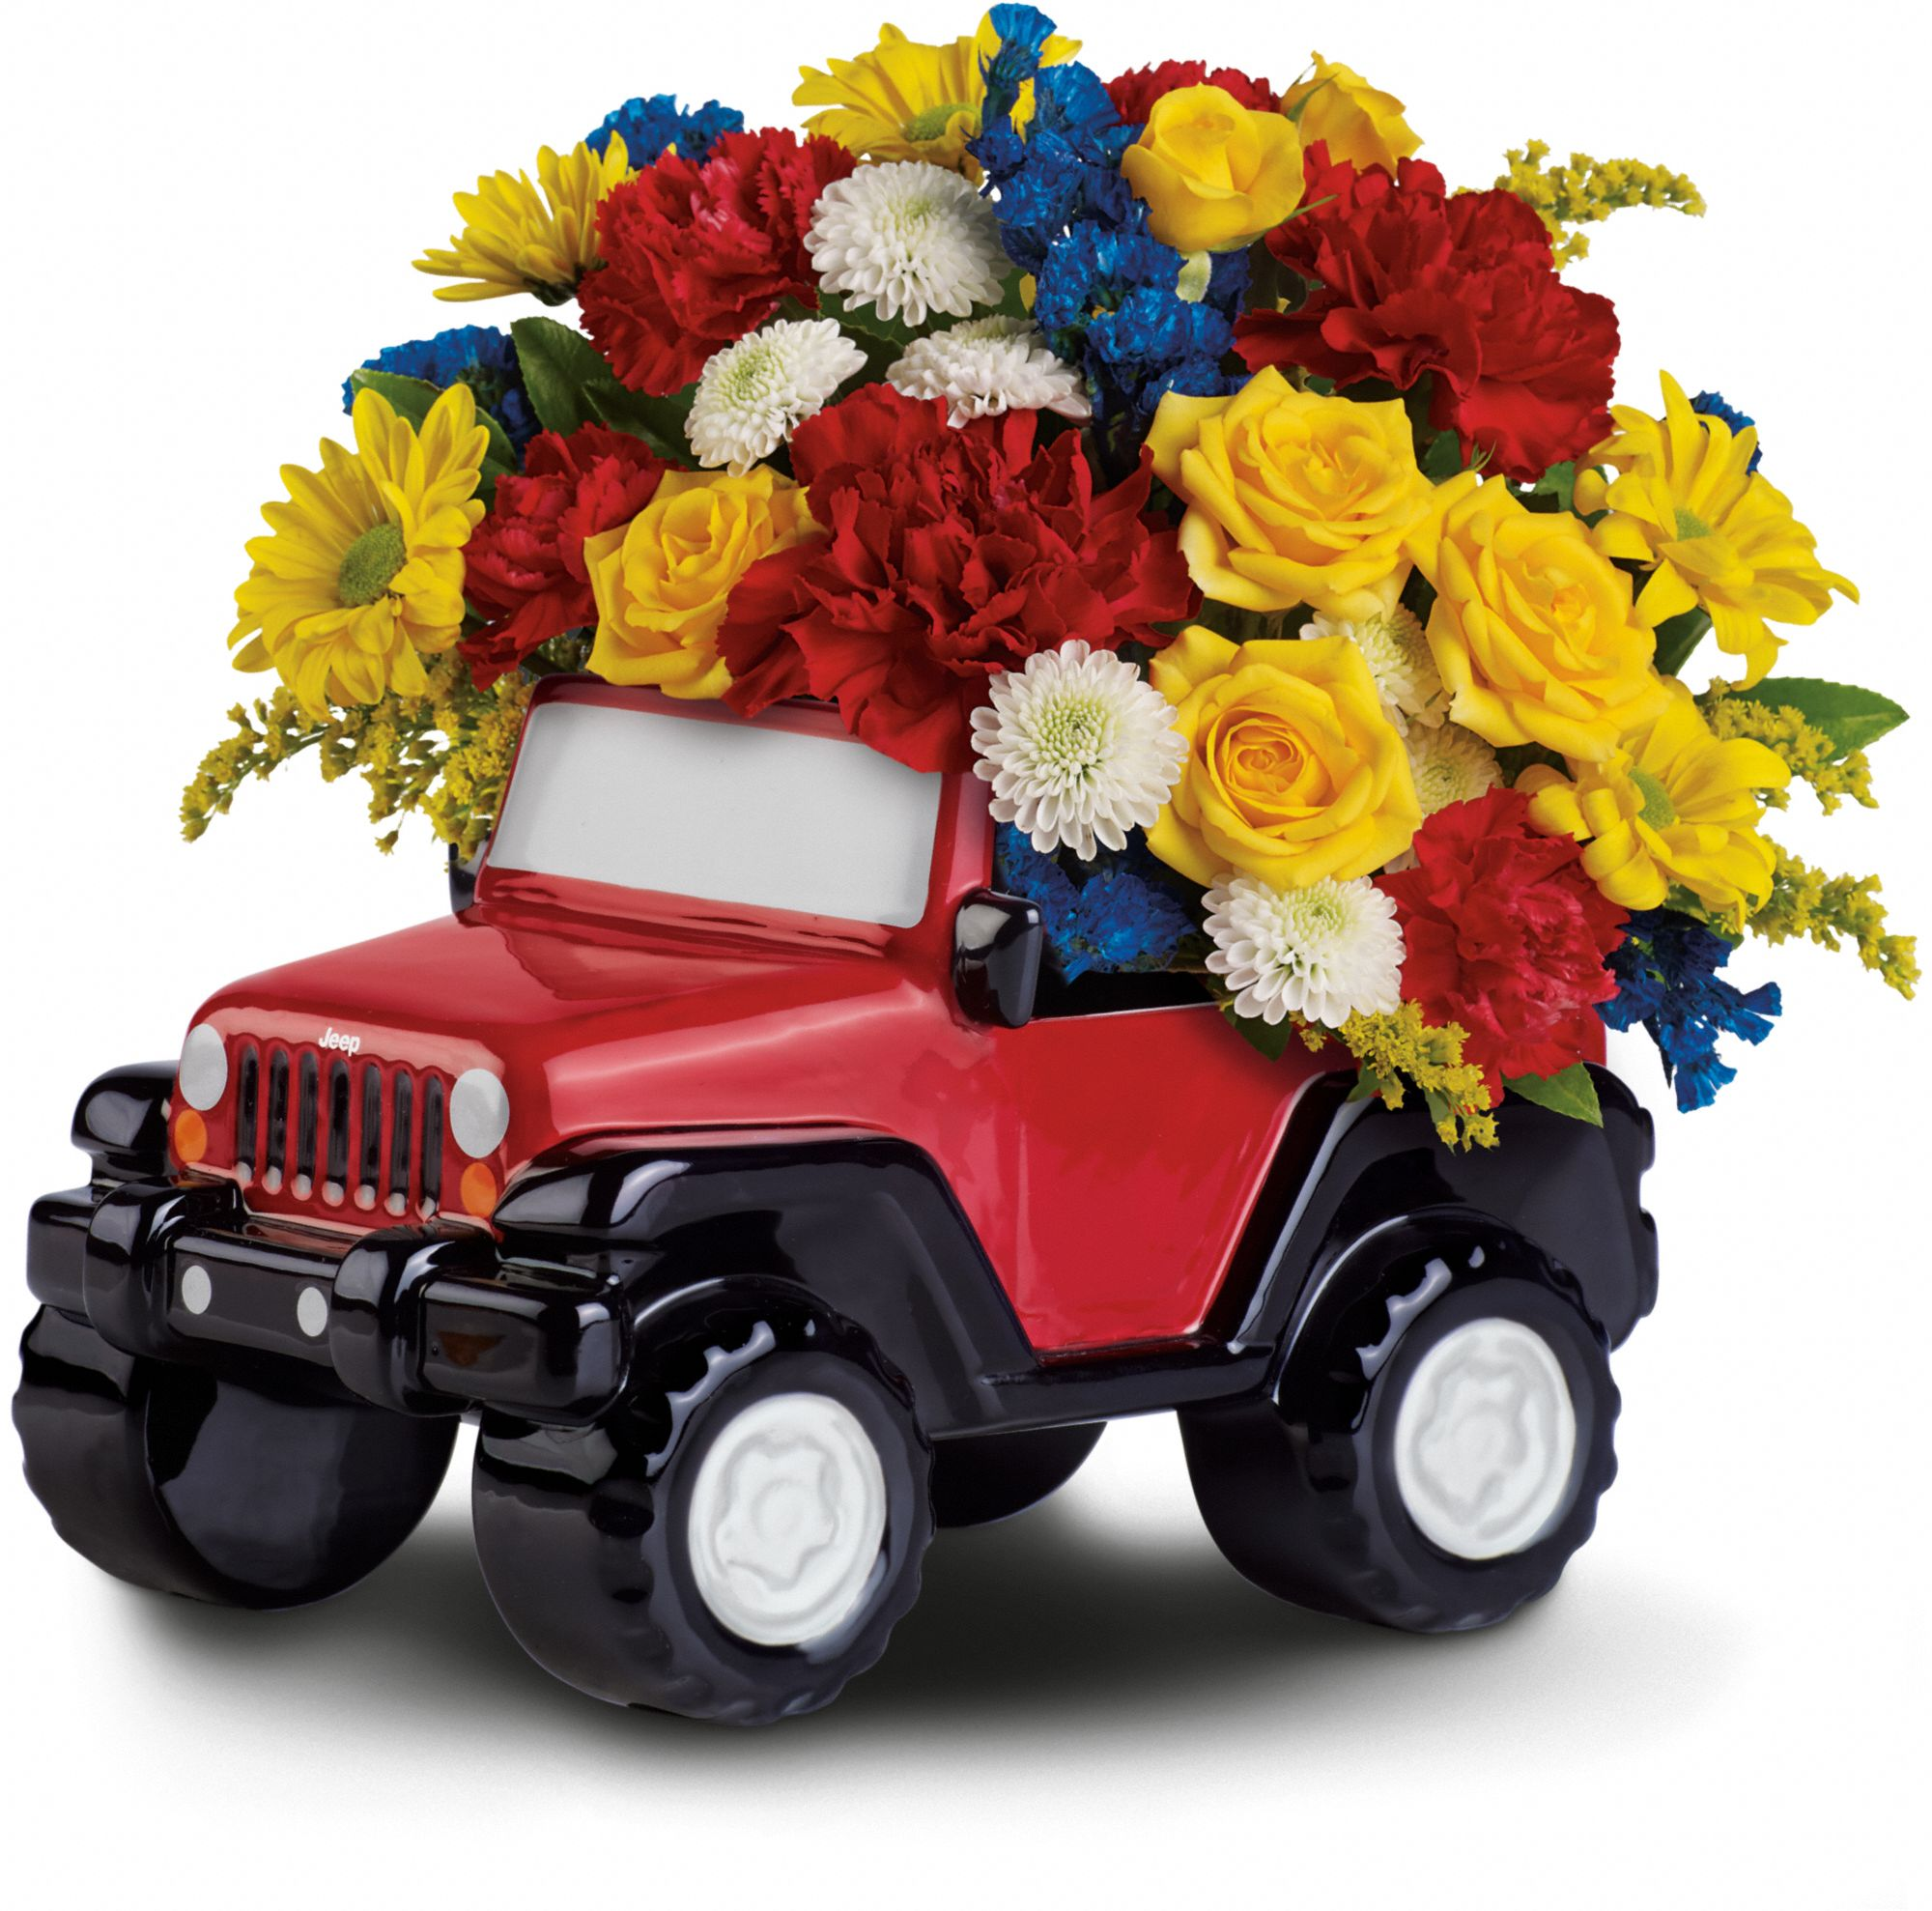 Jeep® Wrangler King of the Road by Teleflora Flowers